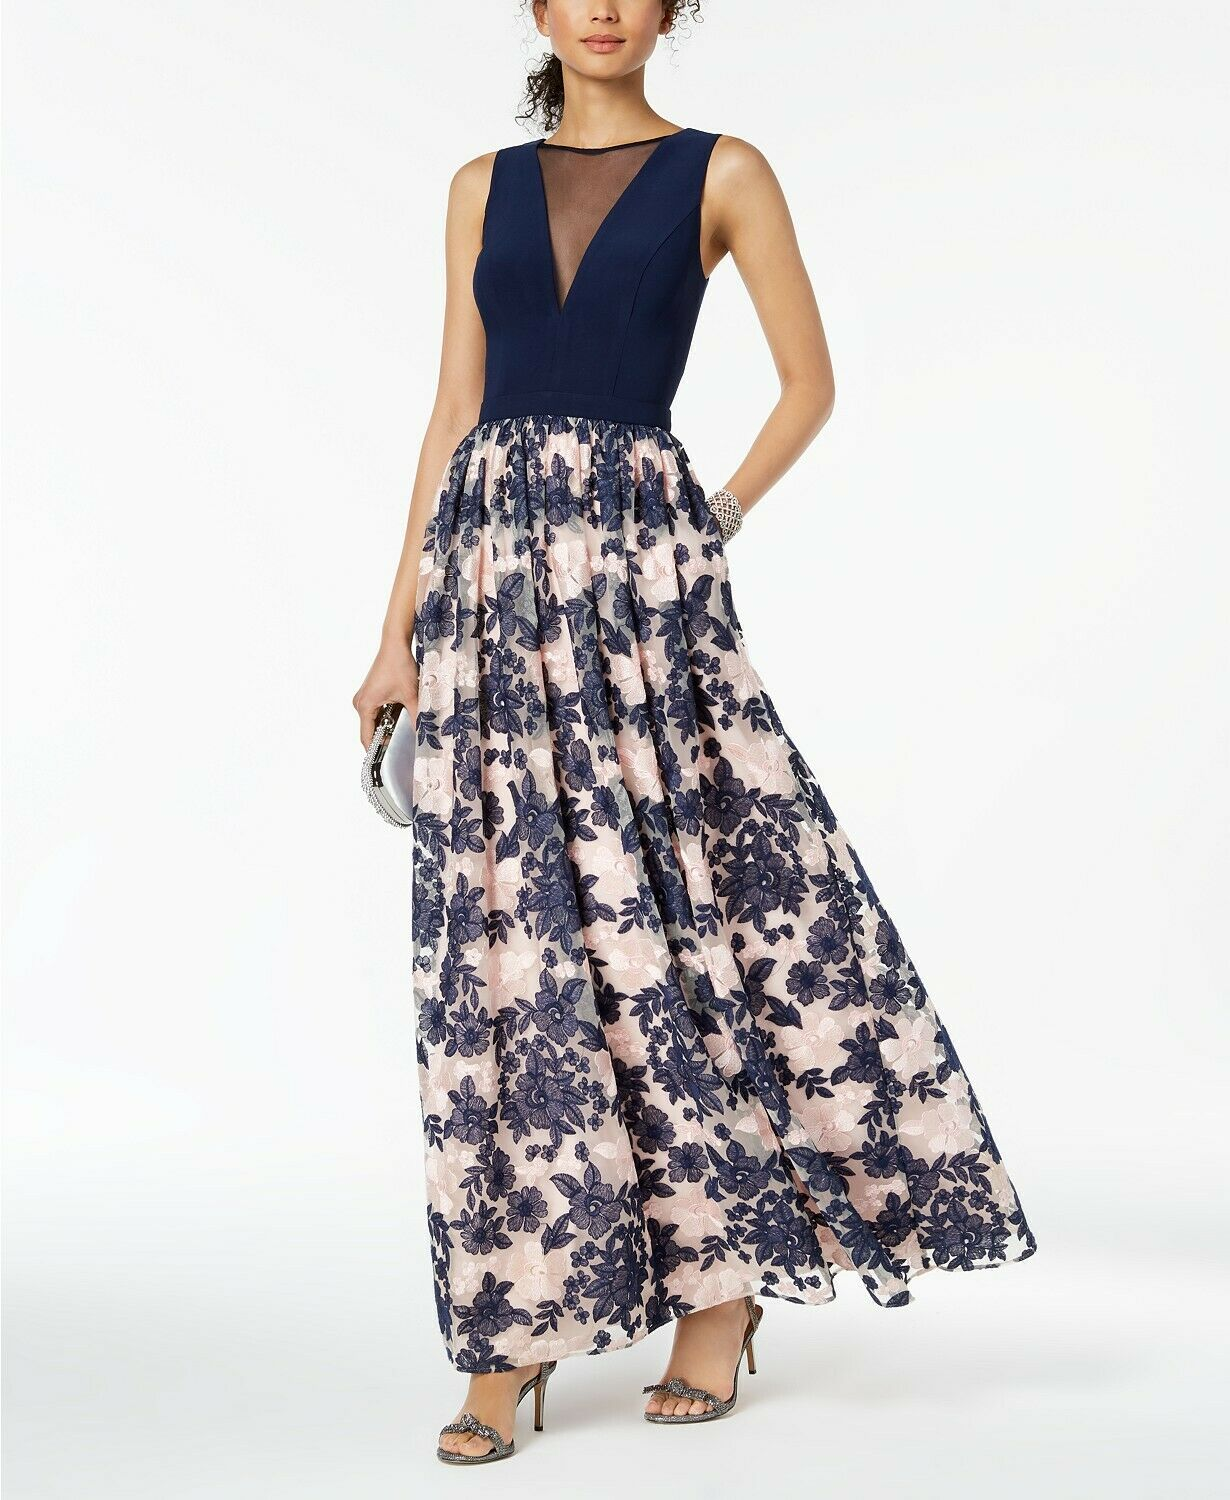 229 NIGHTWAY WOMEN'S NAVY blueE PINK FLORAL EMBROIDERED ILLUSION DRESS SIZE 8